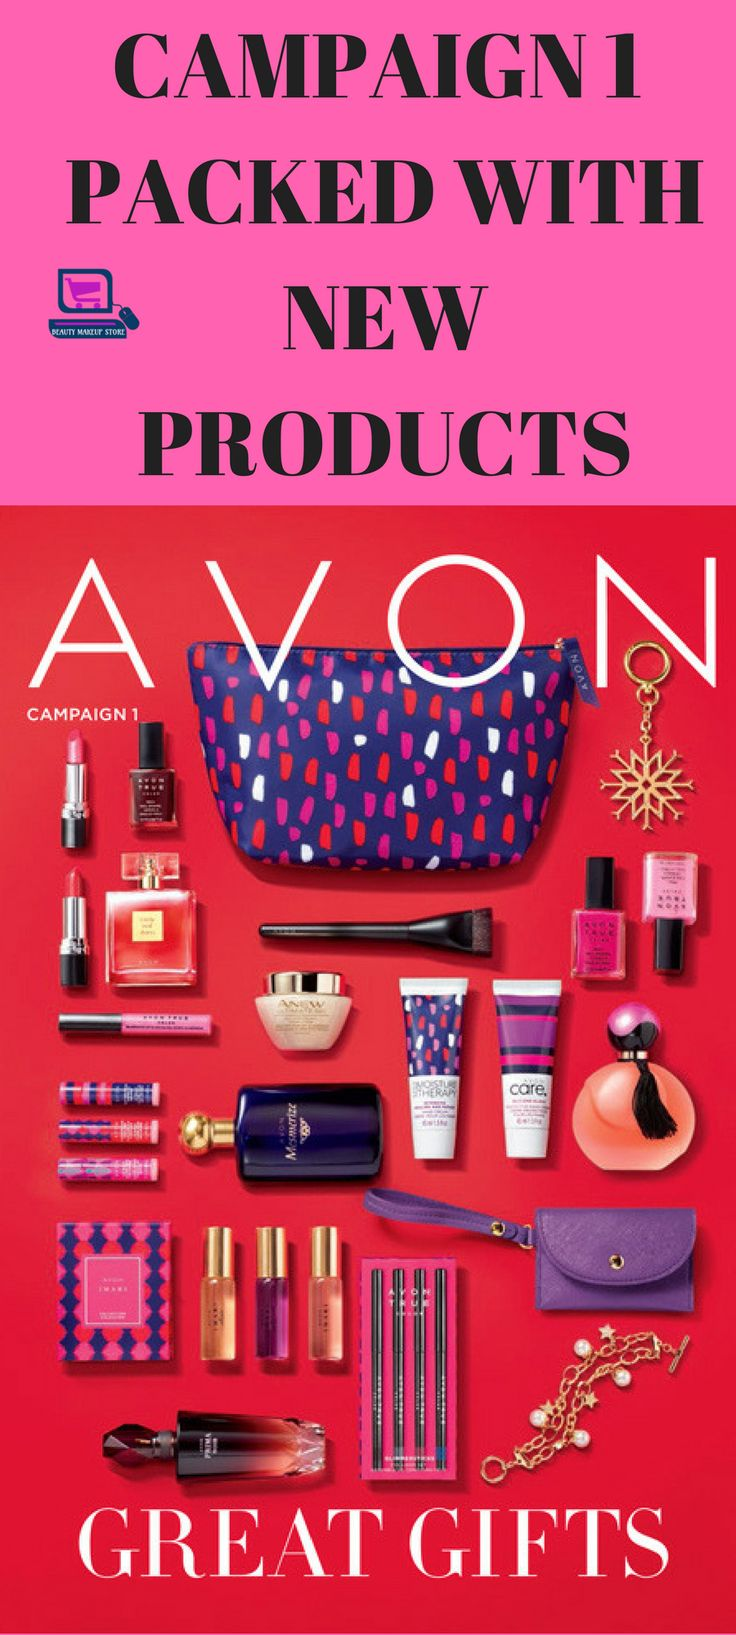 campaign 1 brocure #shopbeautyproducts #beautyproduct #beautyproductswelove  #buyonline #fashion #skin care #buyavononline shop beauty products | Welcome here you will find beauty products pins and some make money online pins enjoy the views shop | Bella Shop = Beauty Products | Shop Beauty Products ampaign 12 avon | campaign 1990 | campaign 17 | Campaign 187 | Campaign 1919 | Campaign 17 2015 | Campaign 1 | CAMPAIGN 10 2016